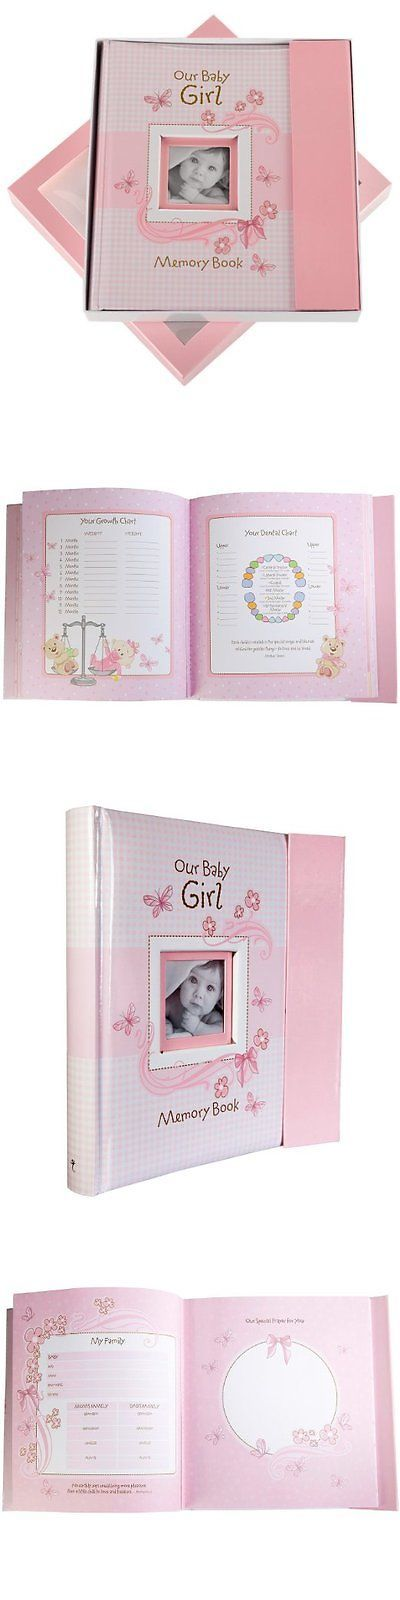 Baby Books and Albums 117389: Pink Memory Baby Album Photo Book For Newborn Girl Pad First Vintage New -> BUY IT NOW ONLY: $30.89 on eBay!